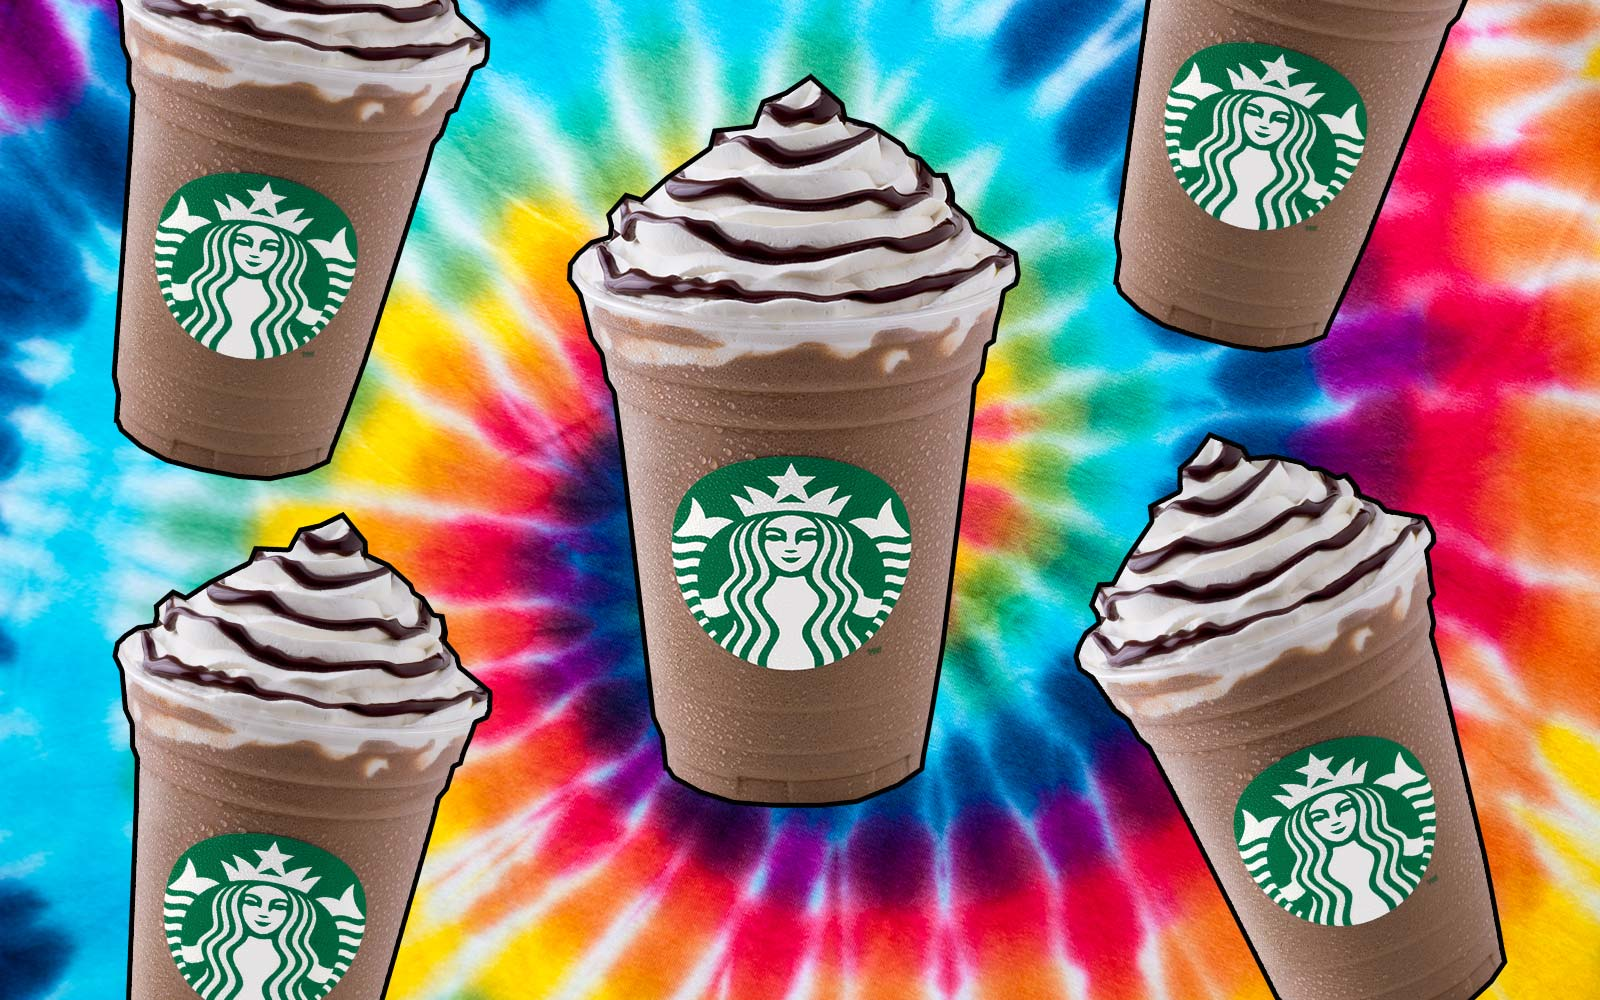 Starbucks' new Mermaid Frappuccino and more off-menu drinks about to take over your Instagram feed